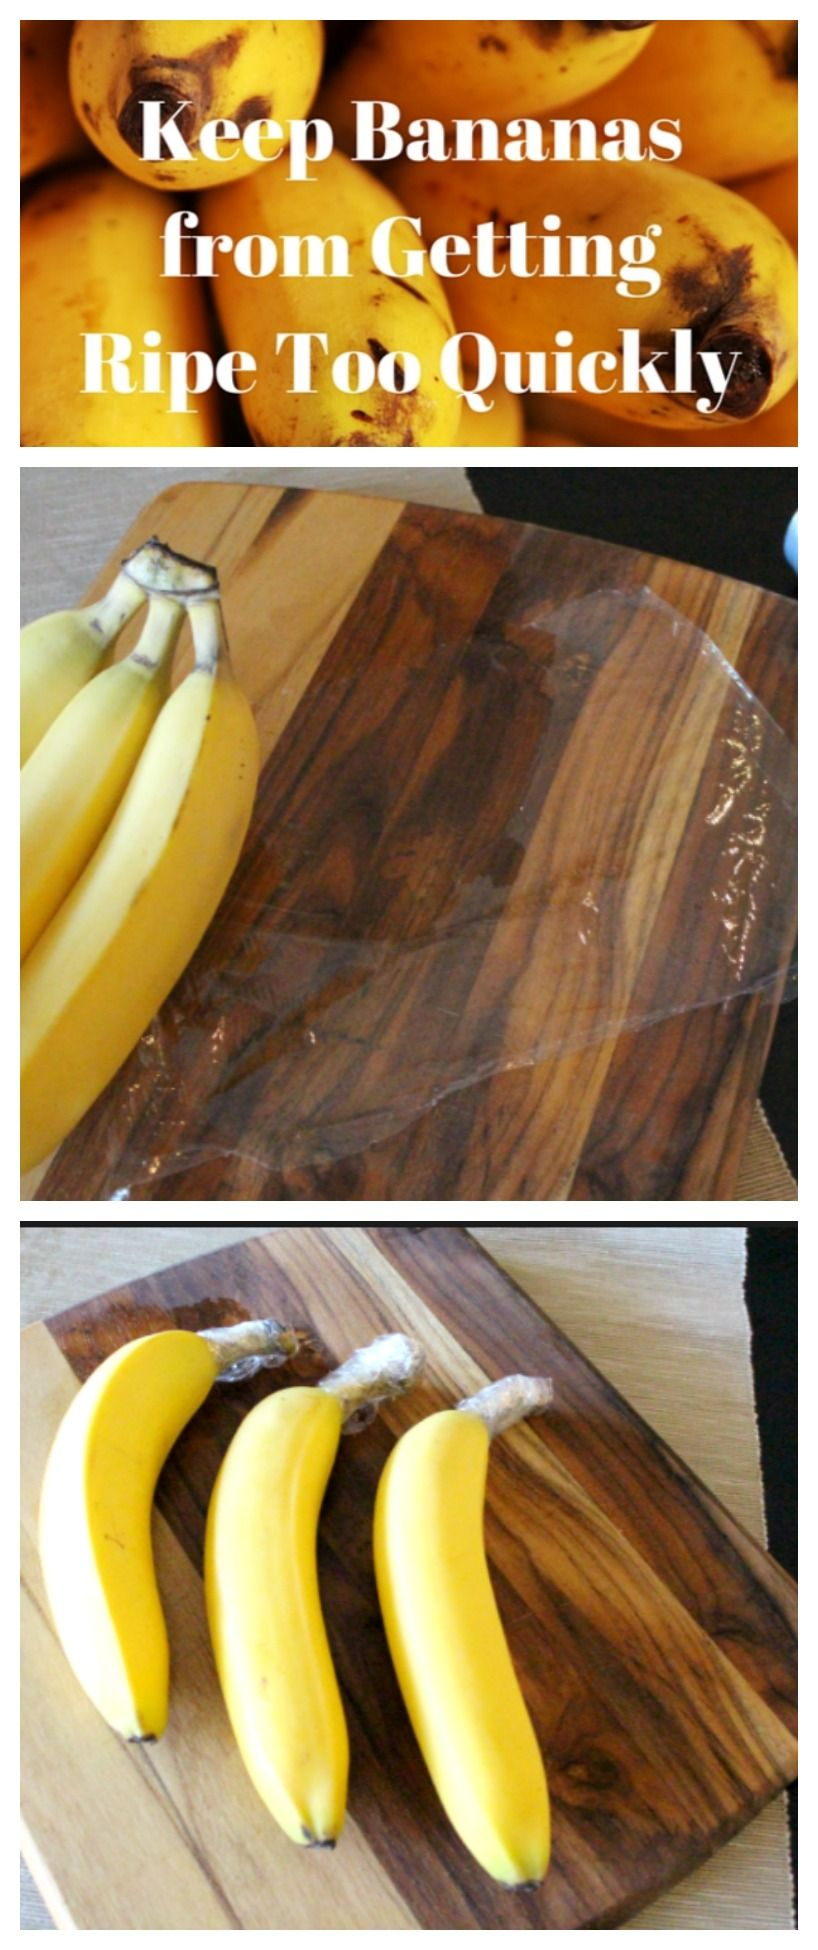 how to preserve bananas from spoiling